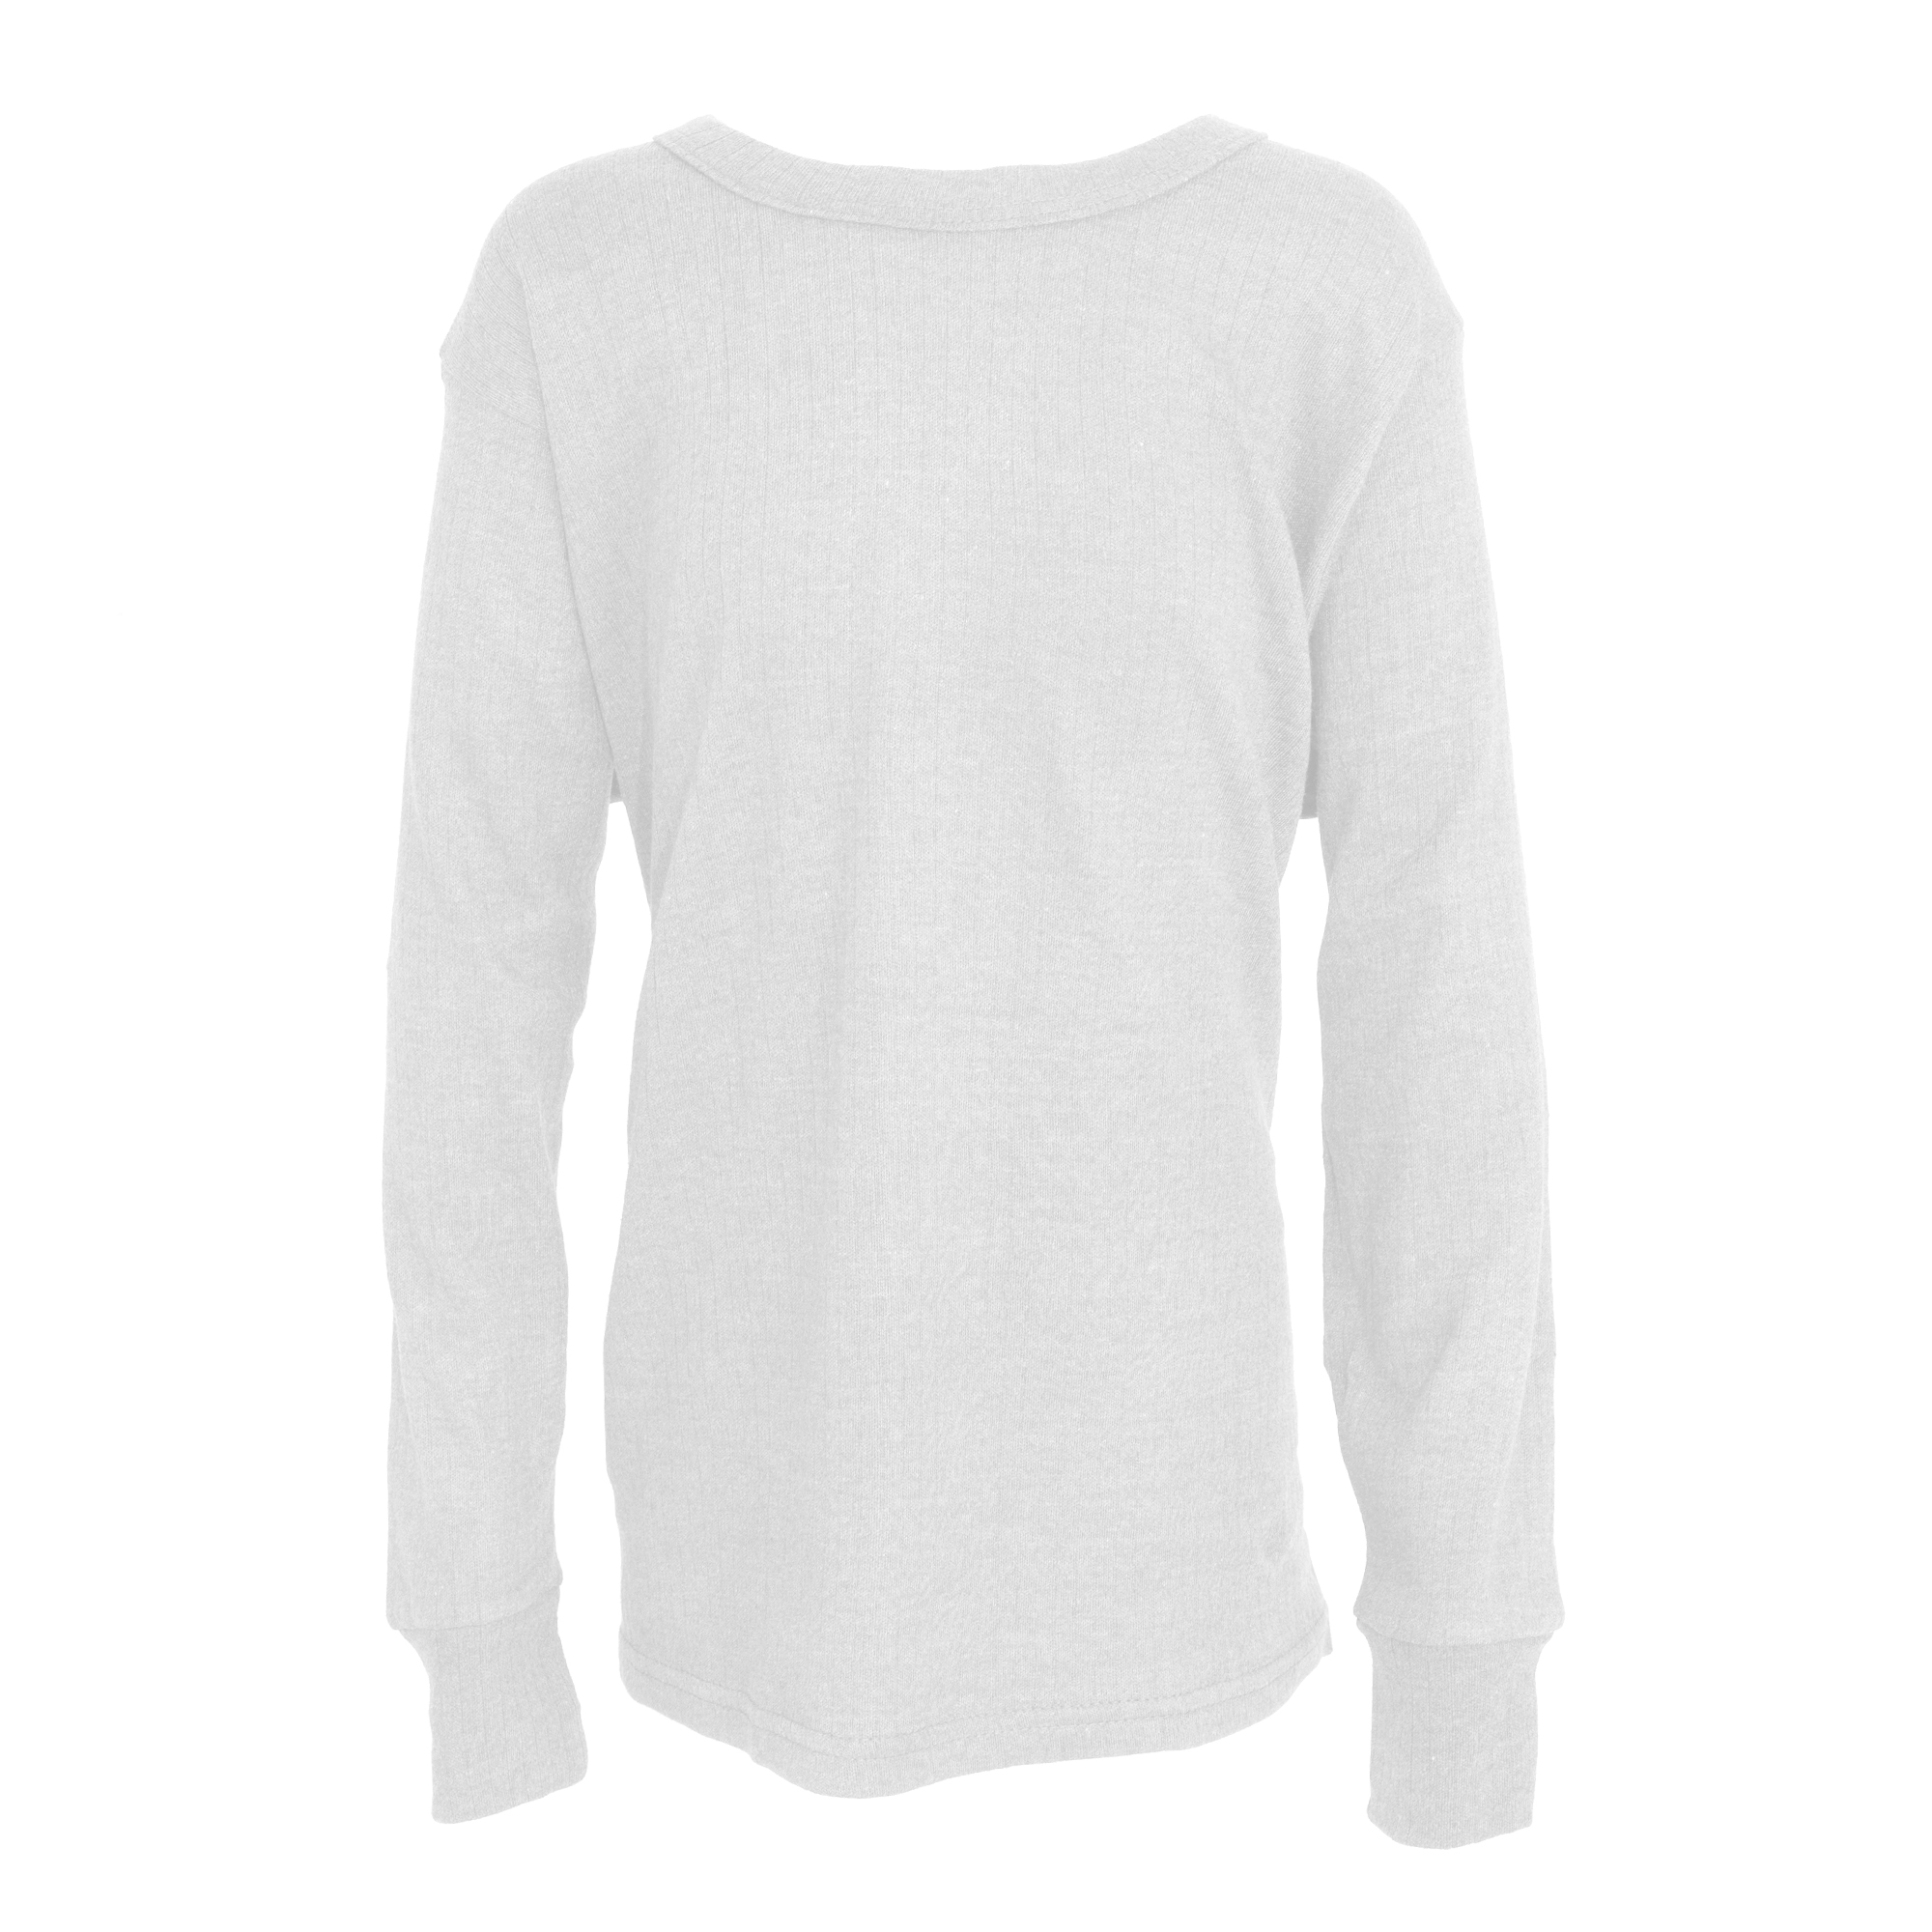 FLOSO Unisex Childrens//Kids Thermal Underwear Long Sleeve Top THERM127